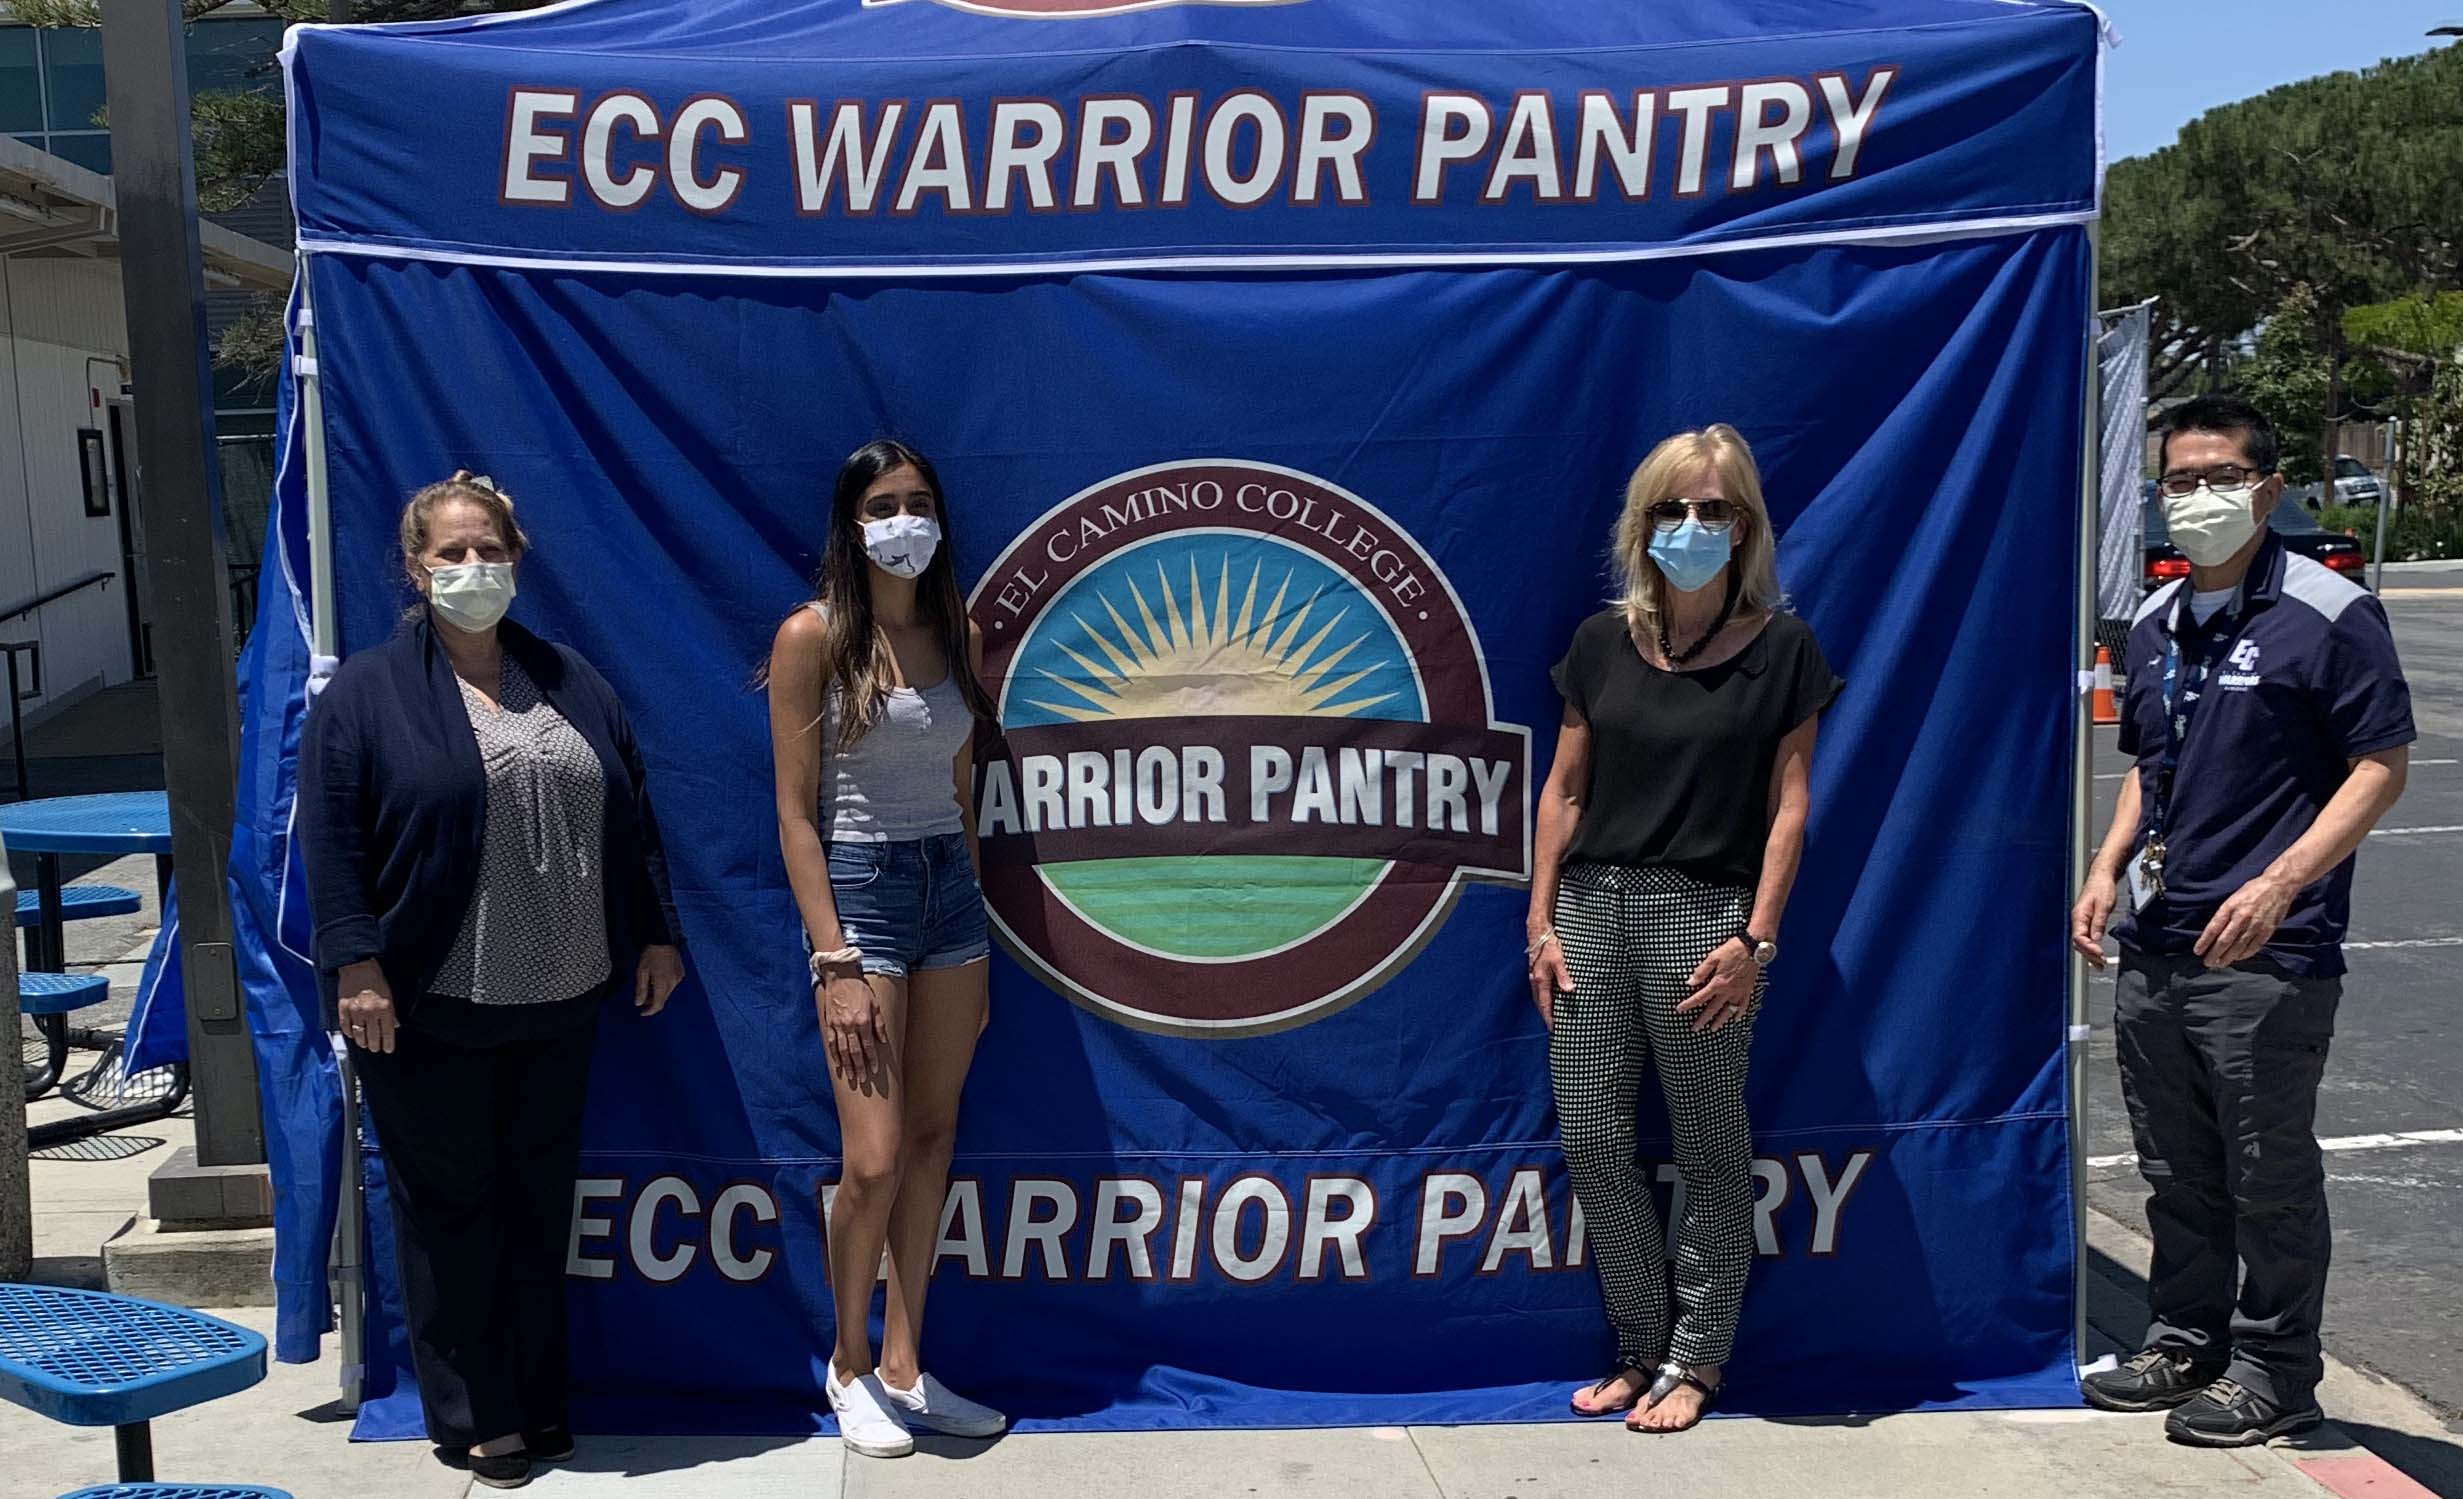 Torrance High School Sophomore Supports El Camino Colleges Warrior Pantry